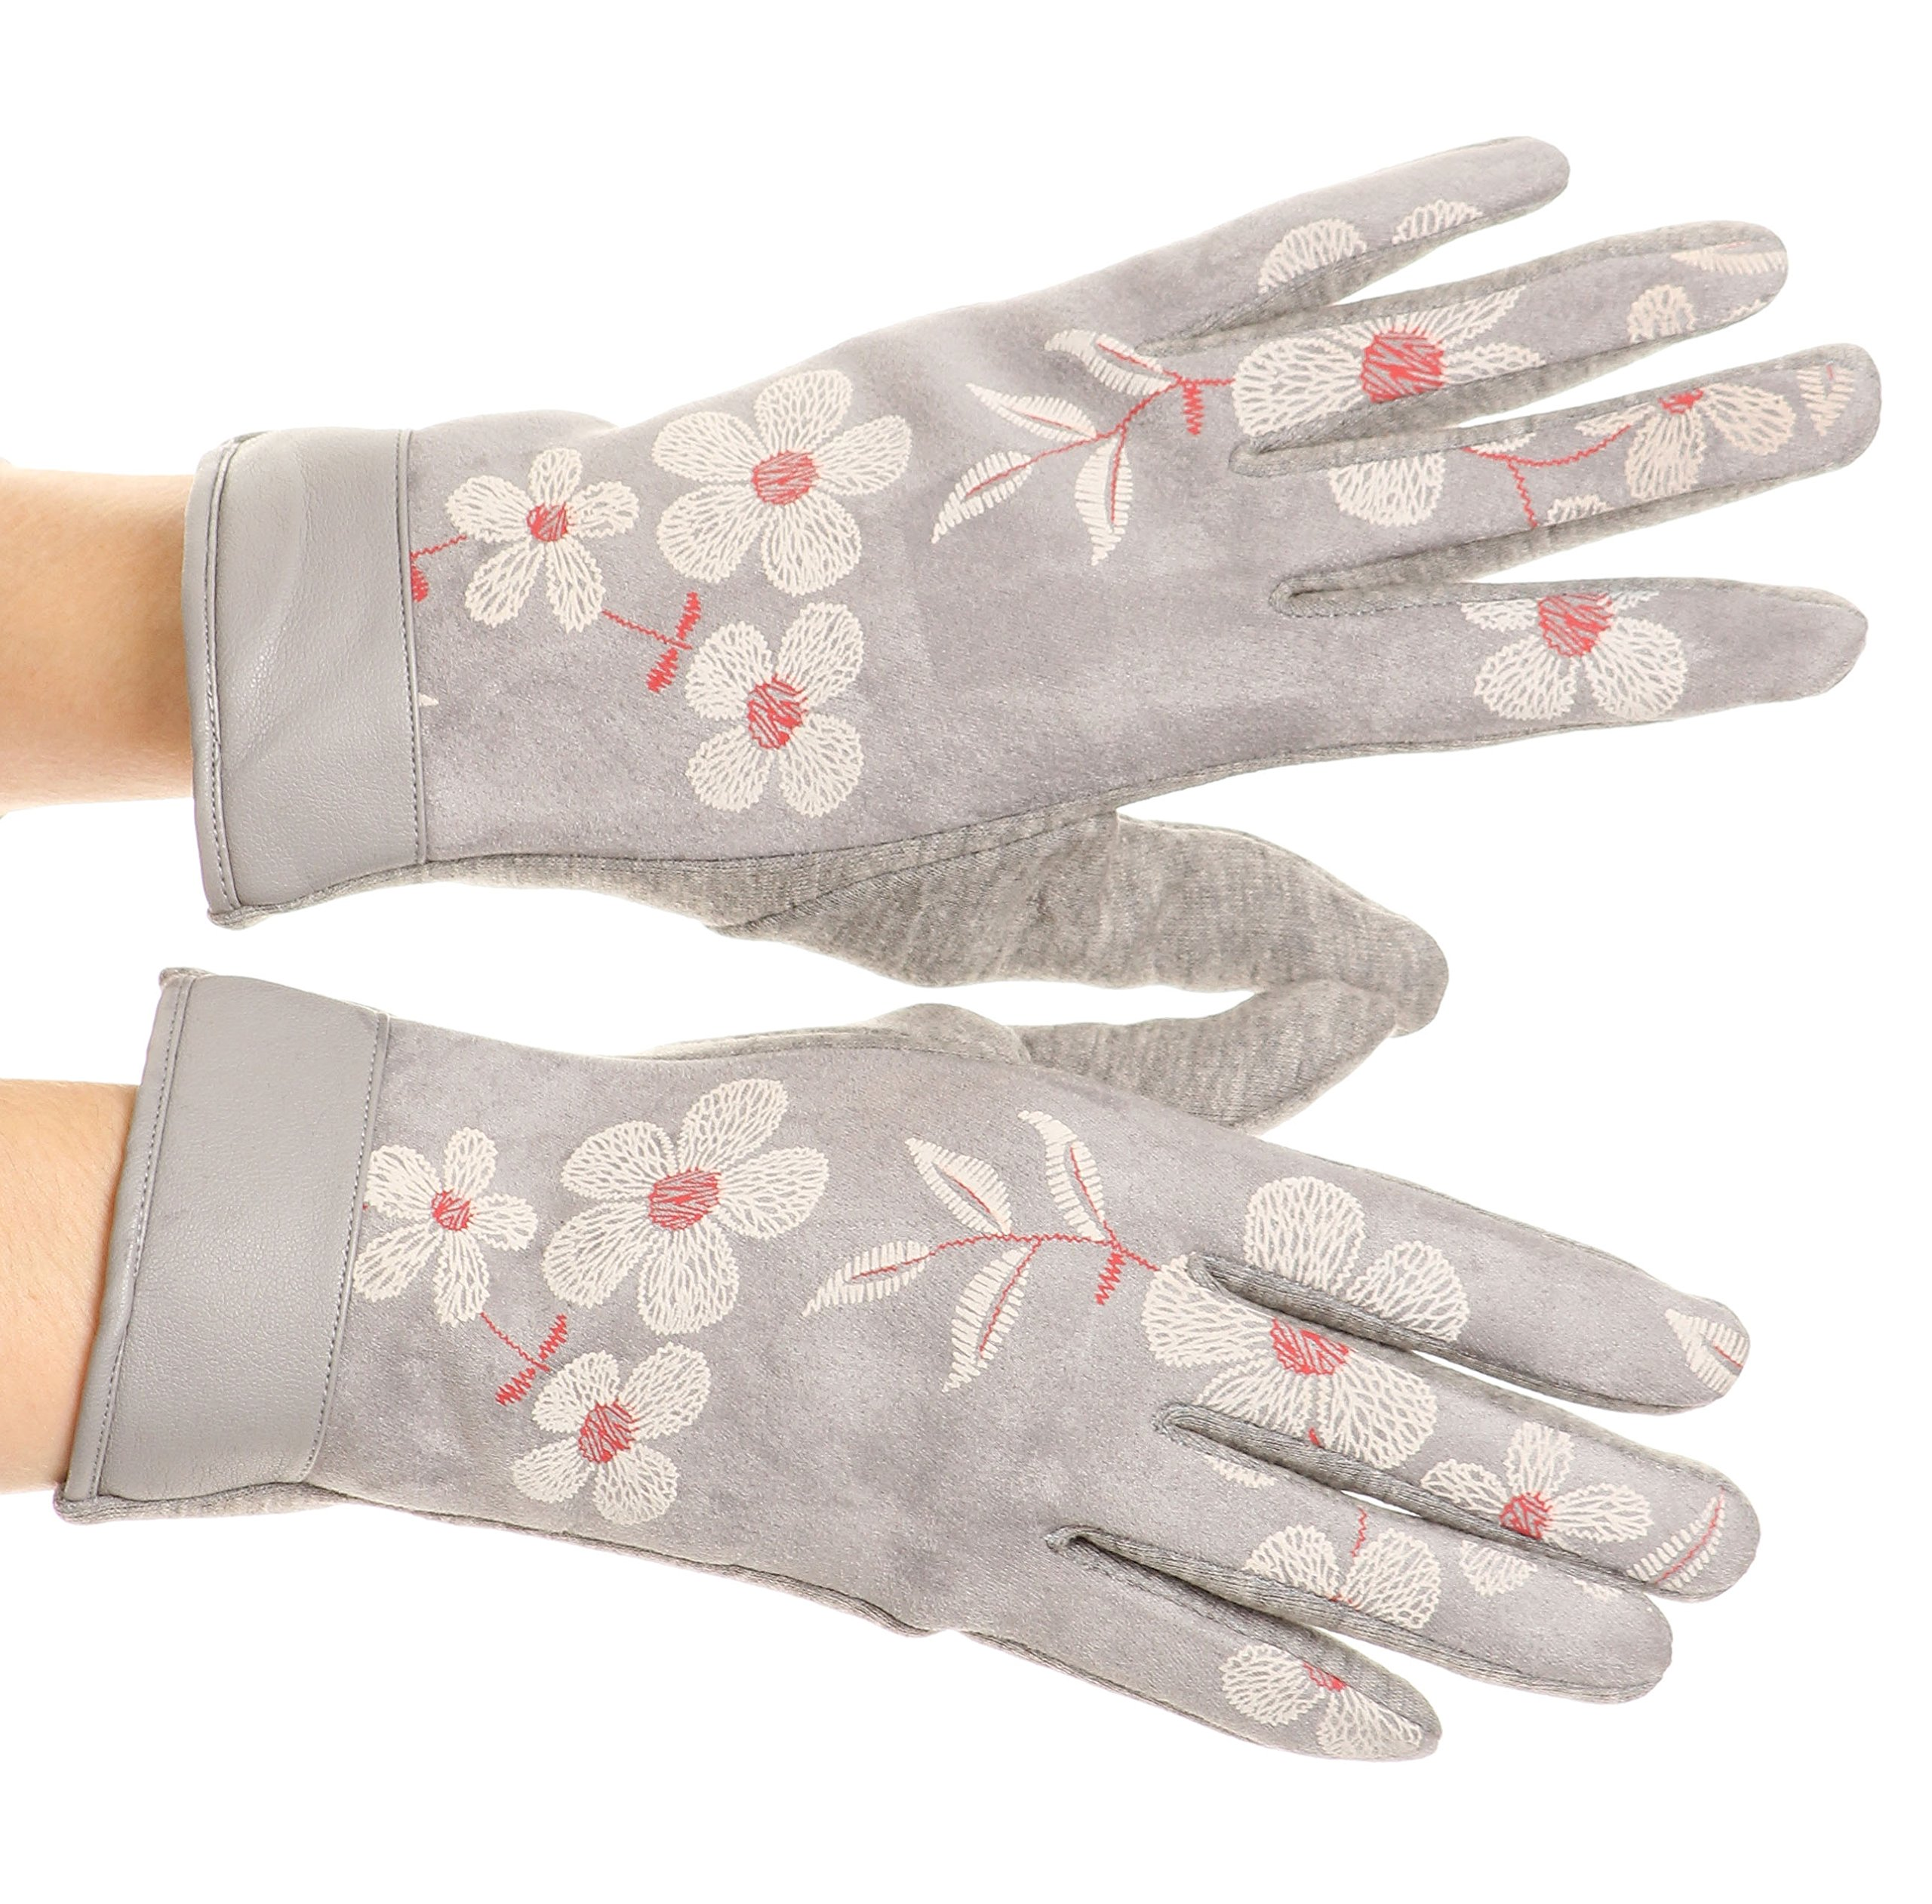 Sakkas GL17 - Liya Classic Warm Driving Touch Screen Capable Stretch Gloves Fleece Lined - 17101-light/gray - S/M